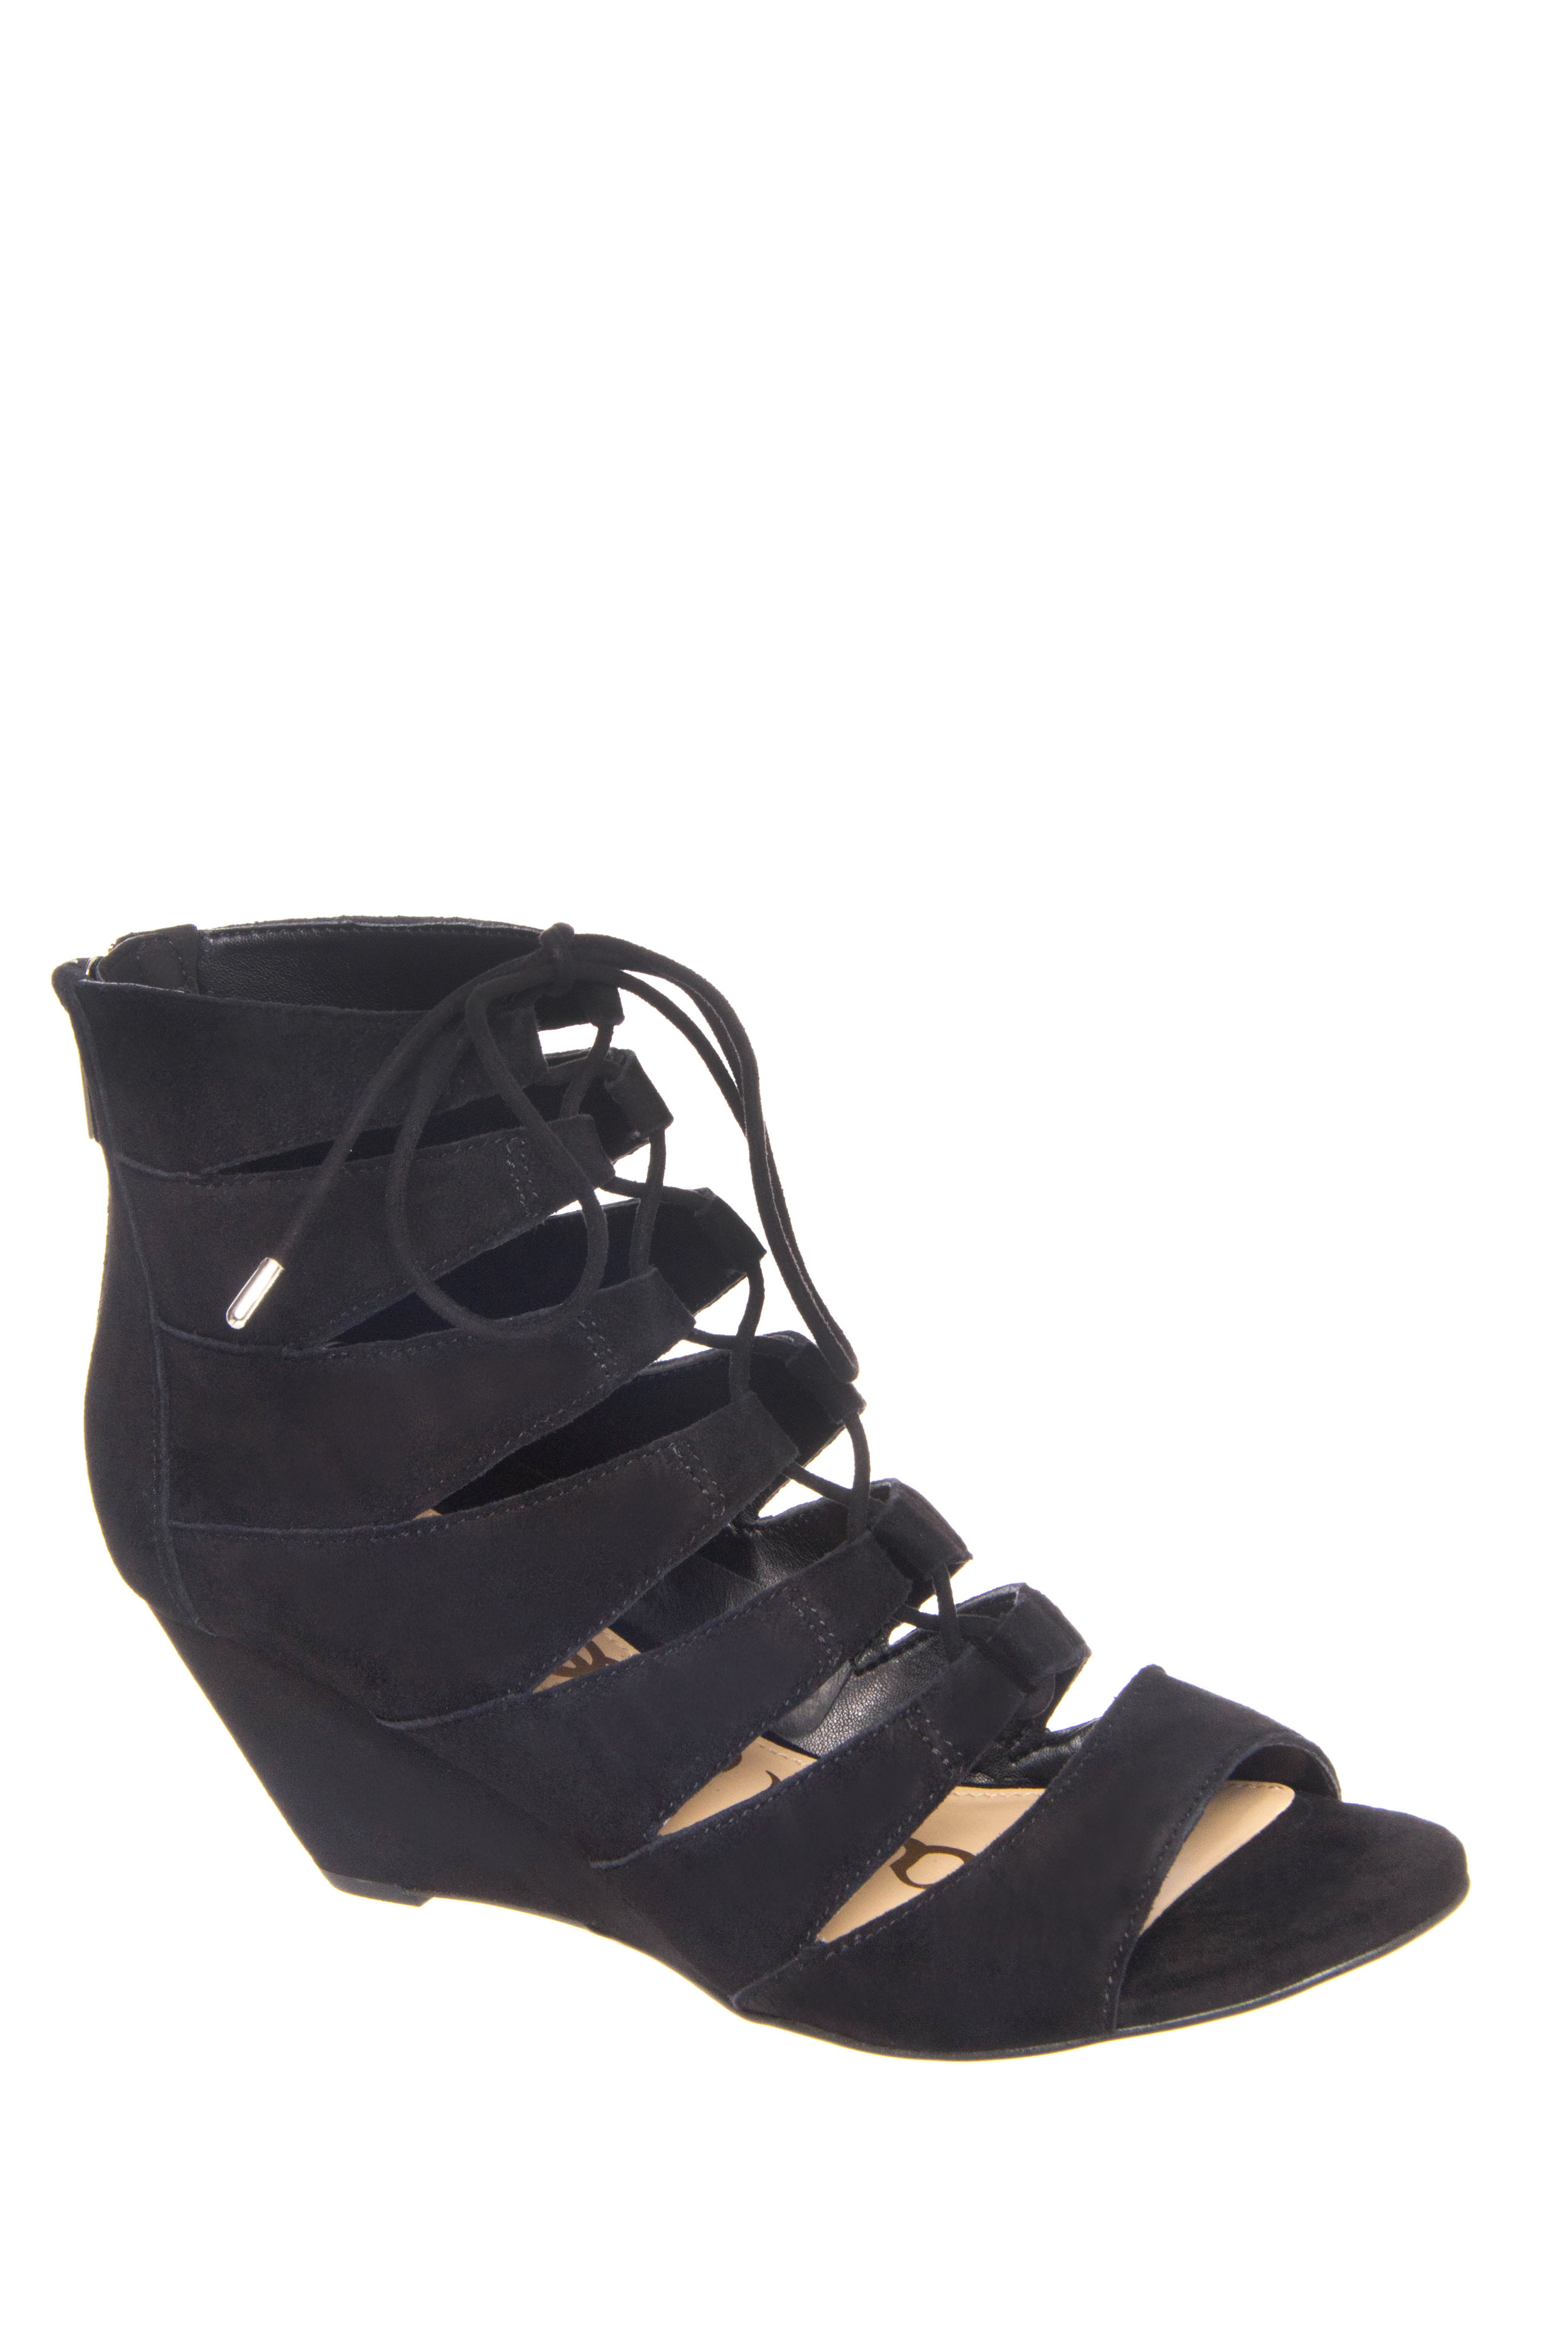 Sam Edelman Santina Mid Wedge Gladiator Sandals - Black